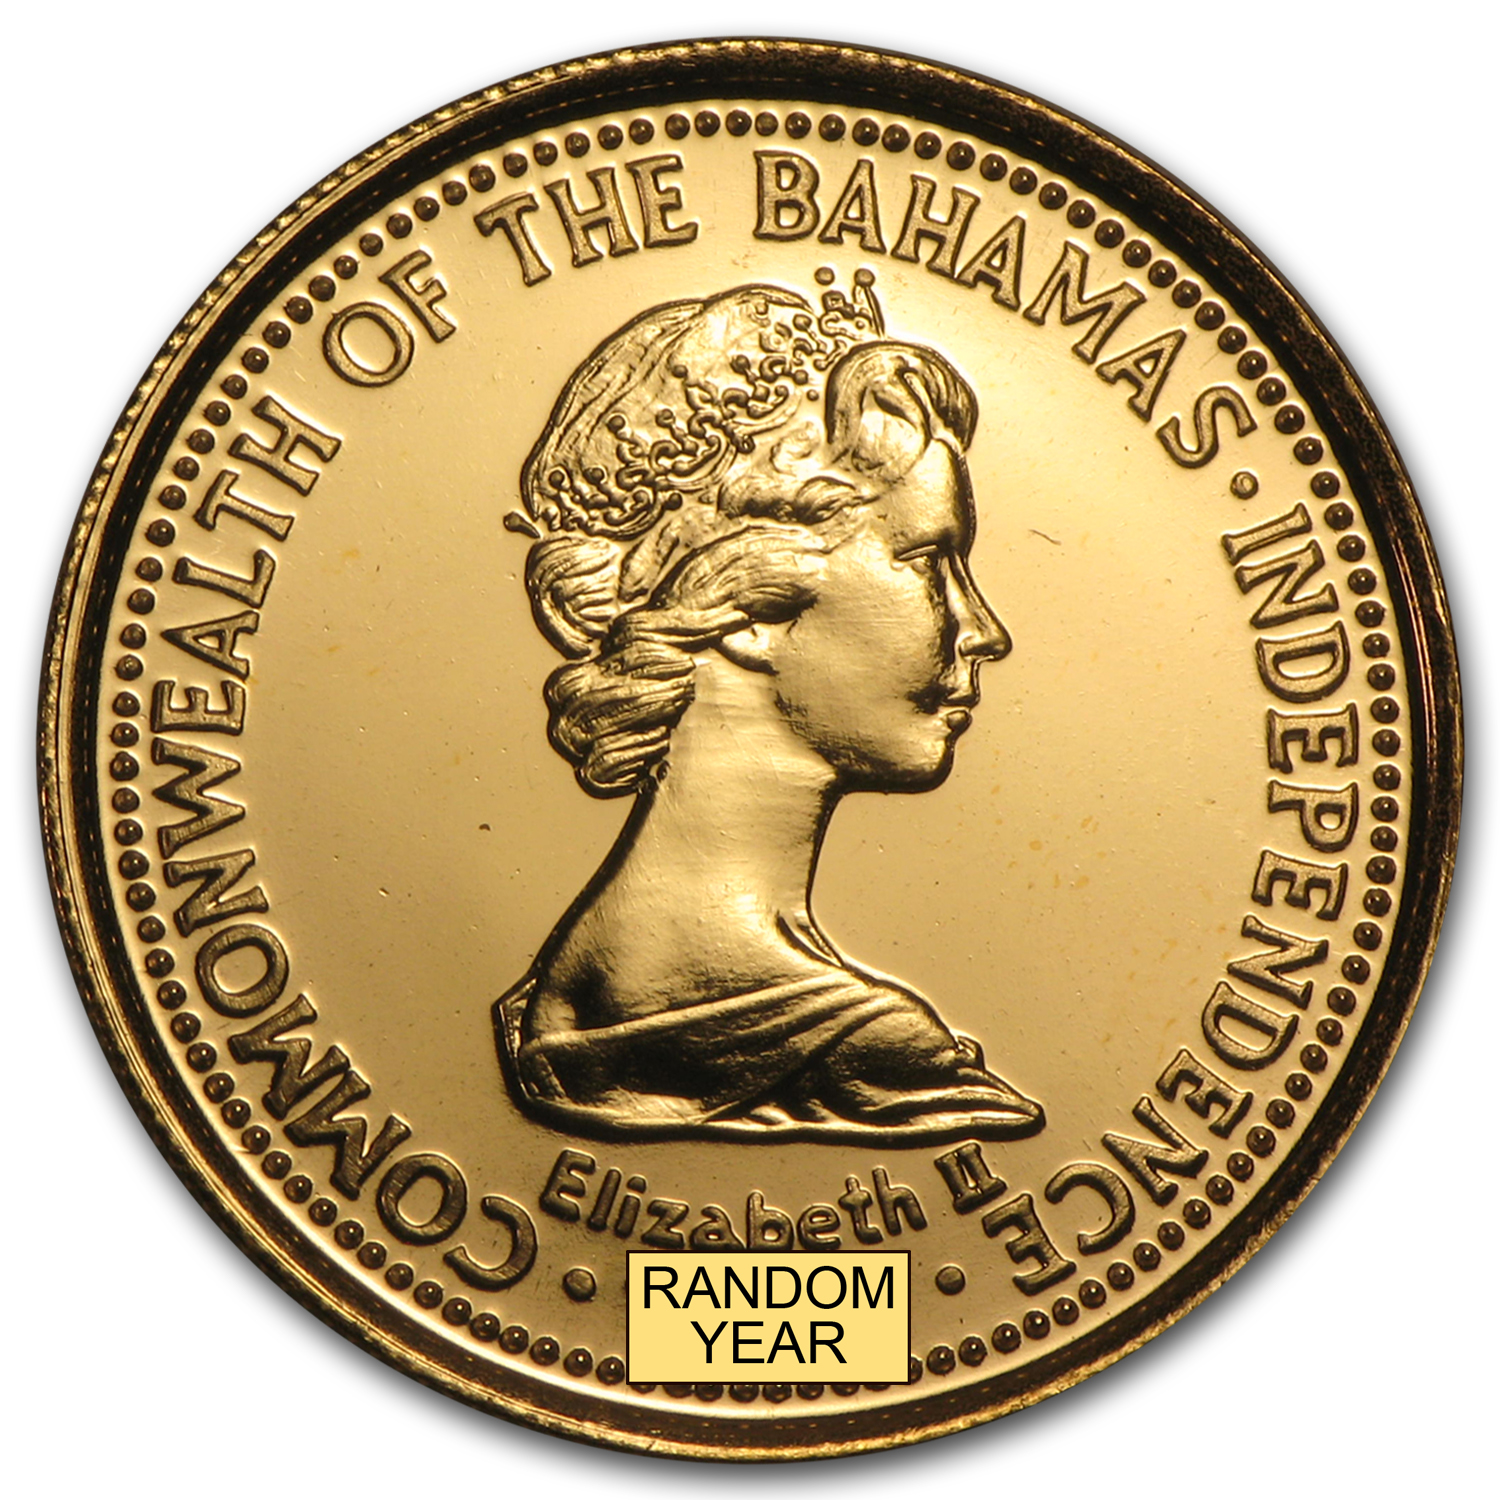 1973-77 Bahamas Gold 100 Dollars BU/Proof